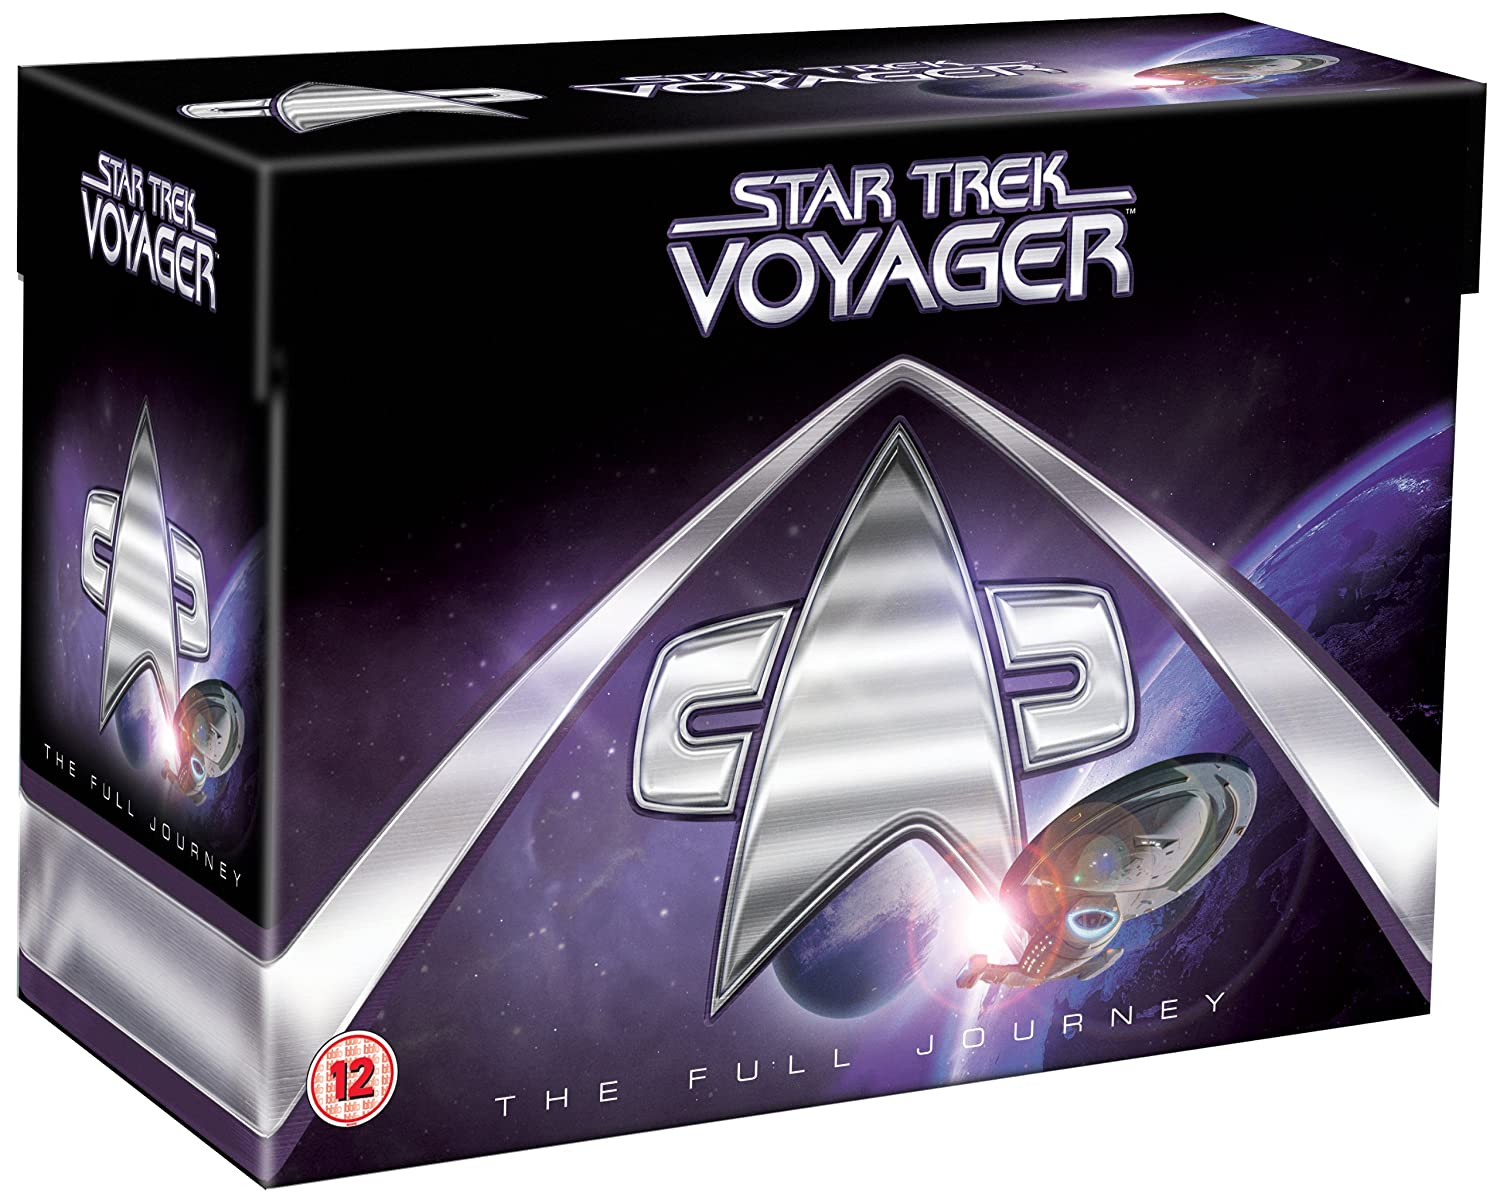 Star Trek-Voyager-Complete [Reino Unido] [DVD]: Amazon.es: Movie, Film: Cine y Series TV